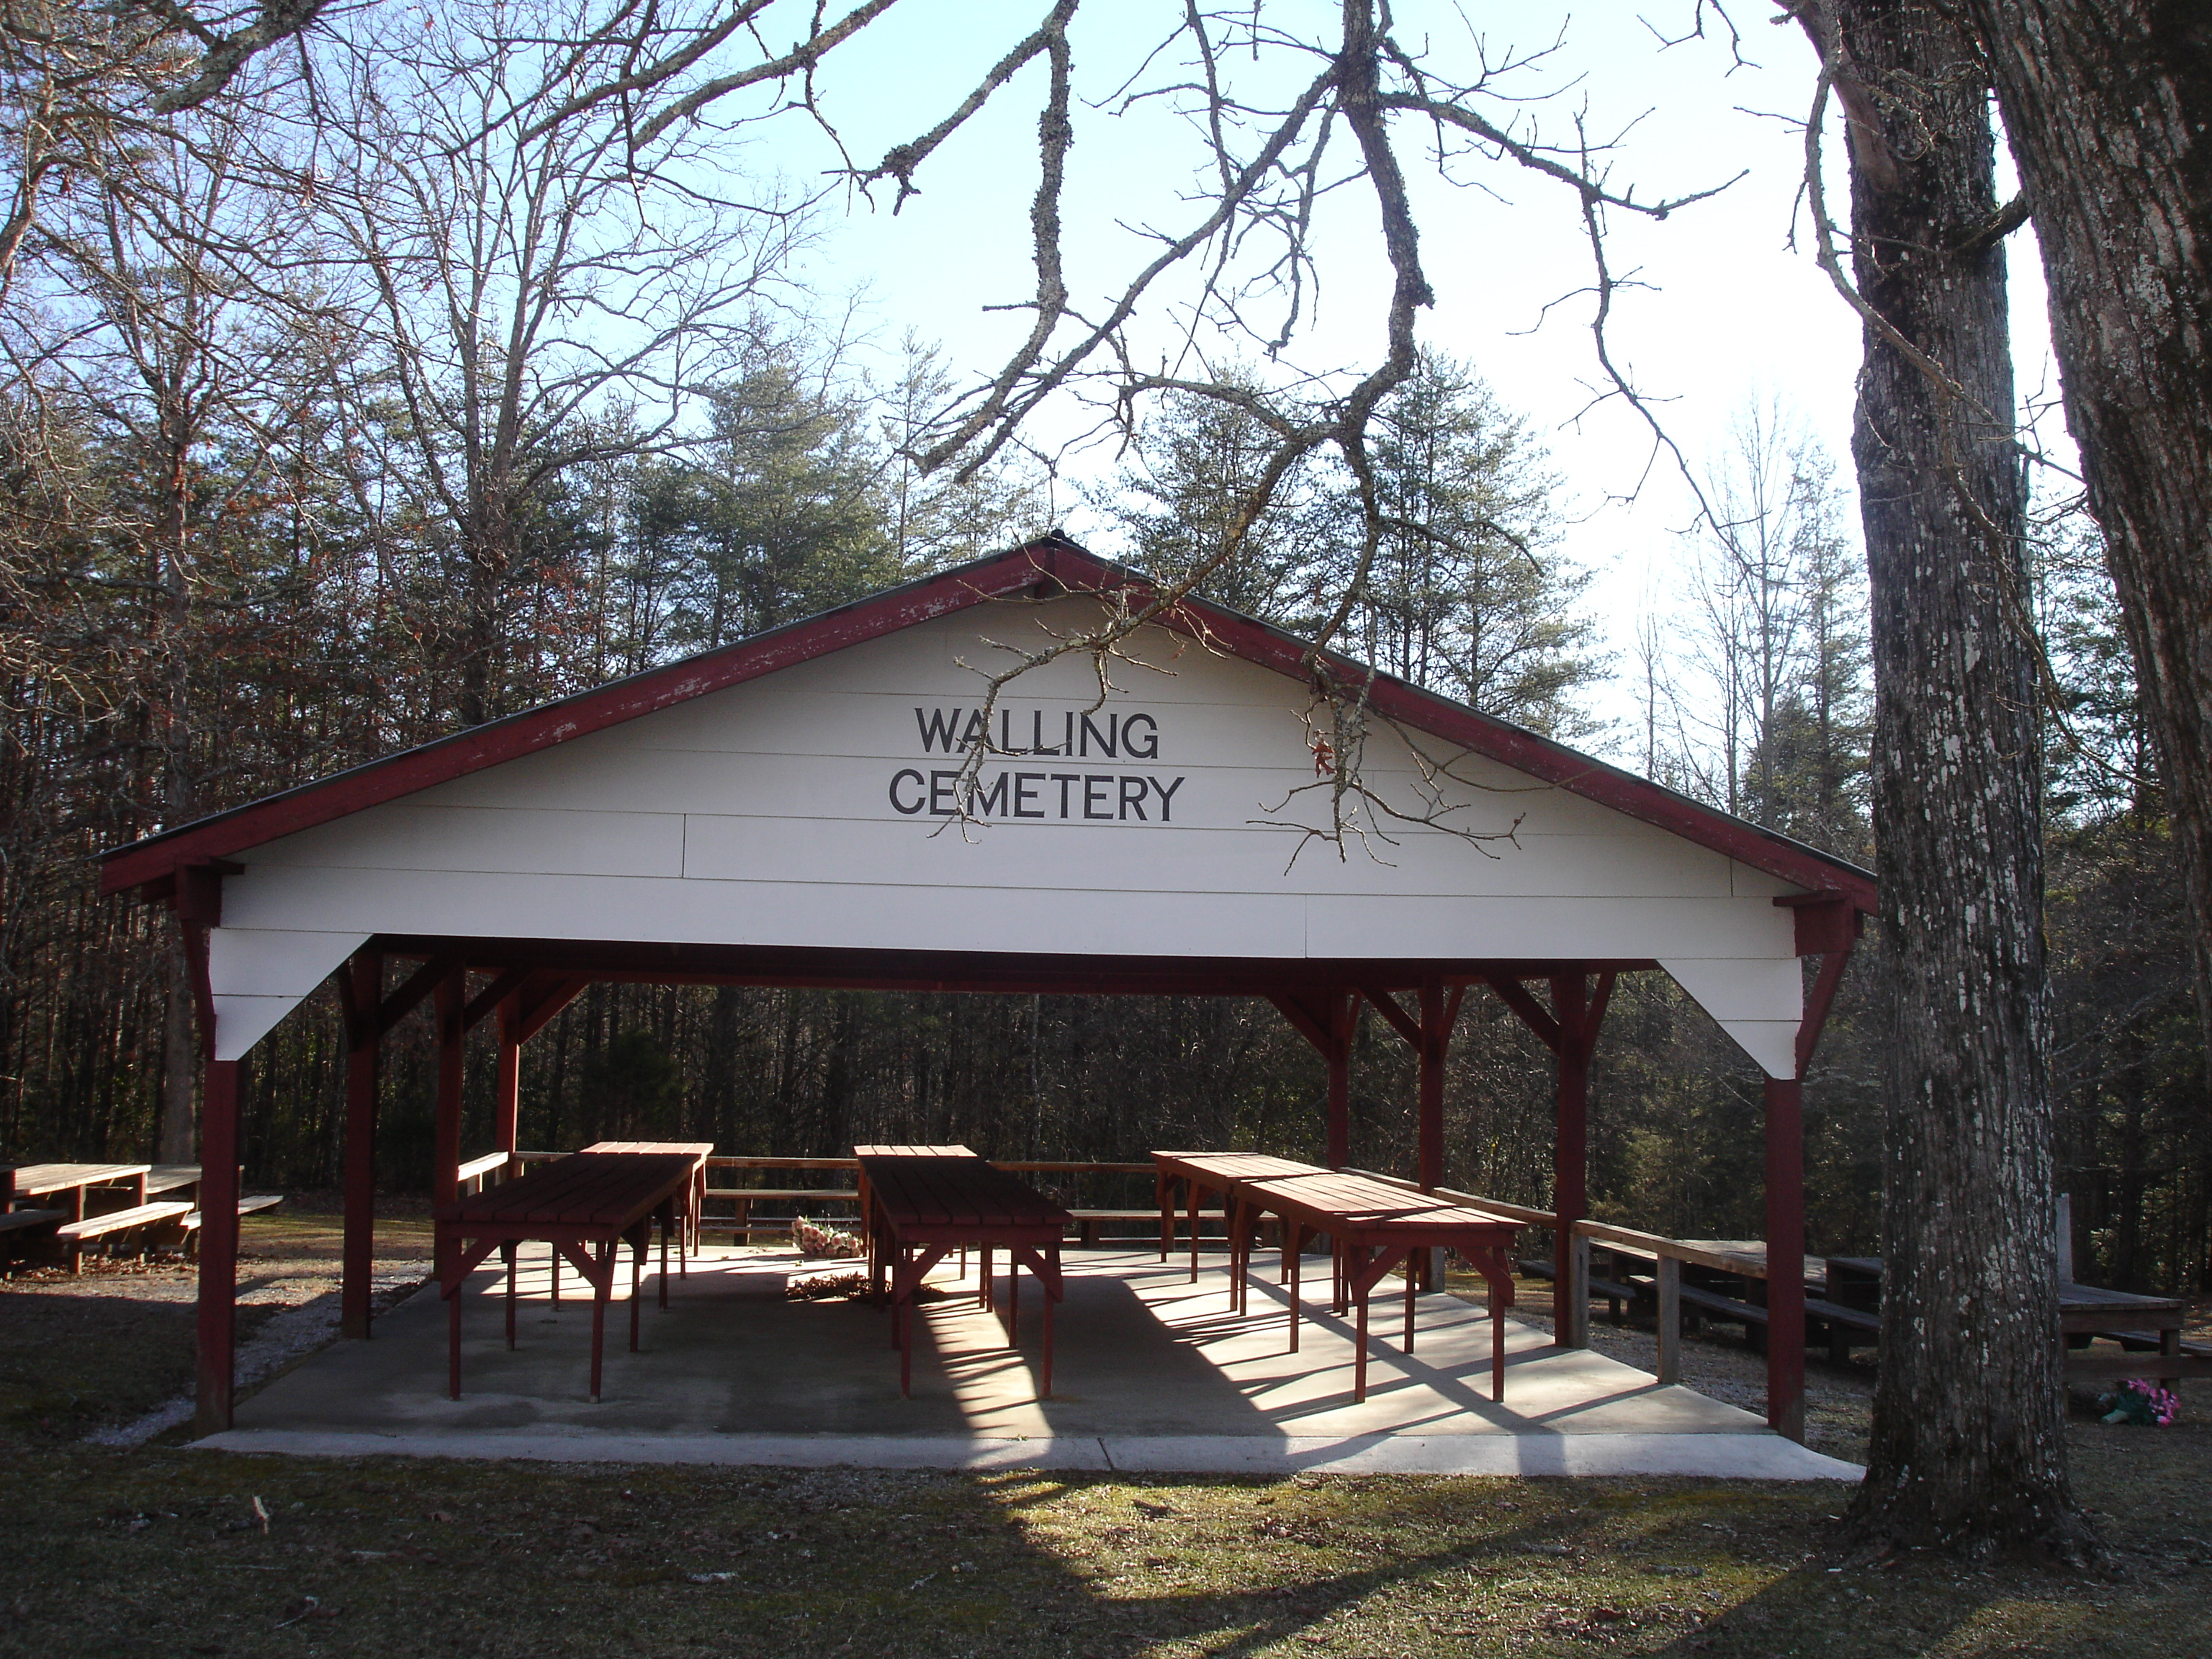 Tennessee white county walling - Walling Cemetery Picnic Area